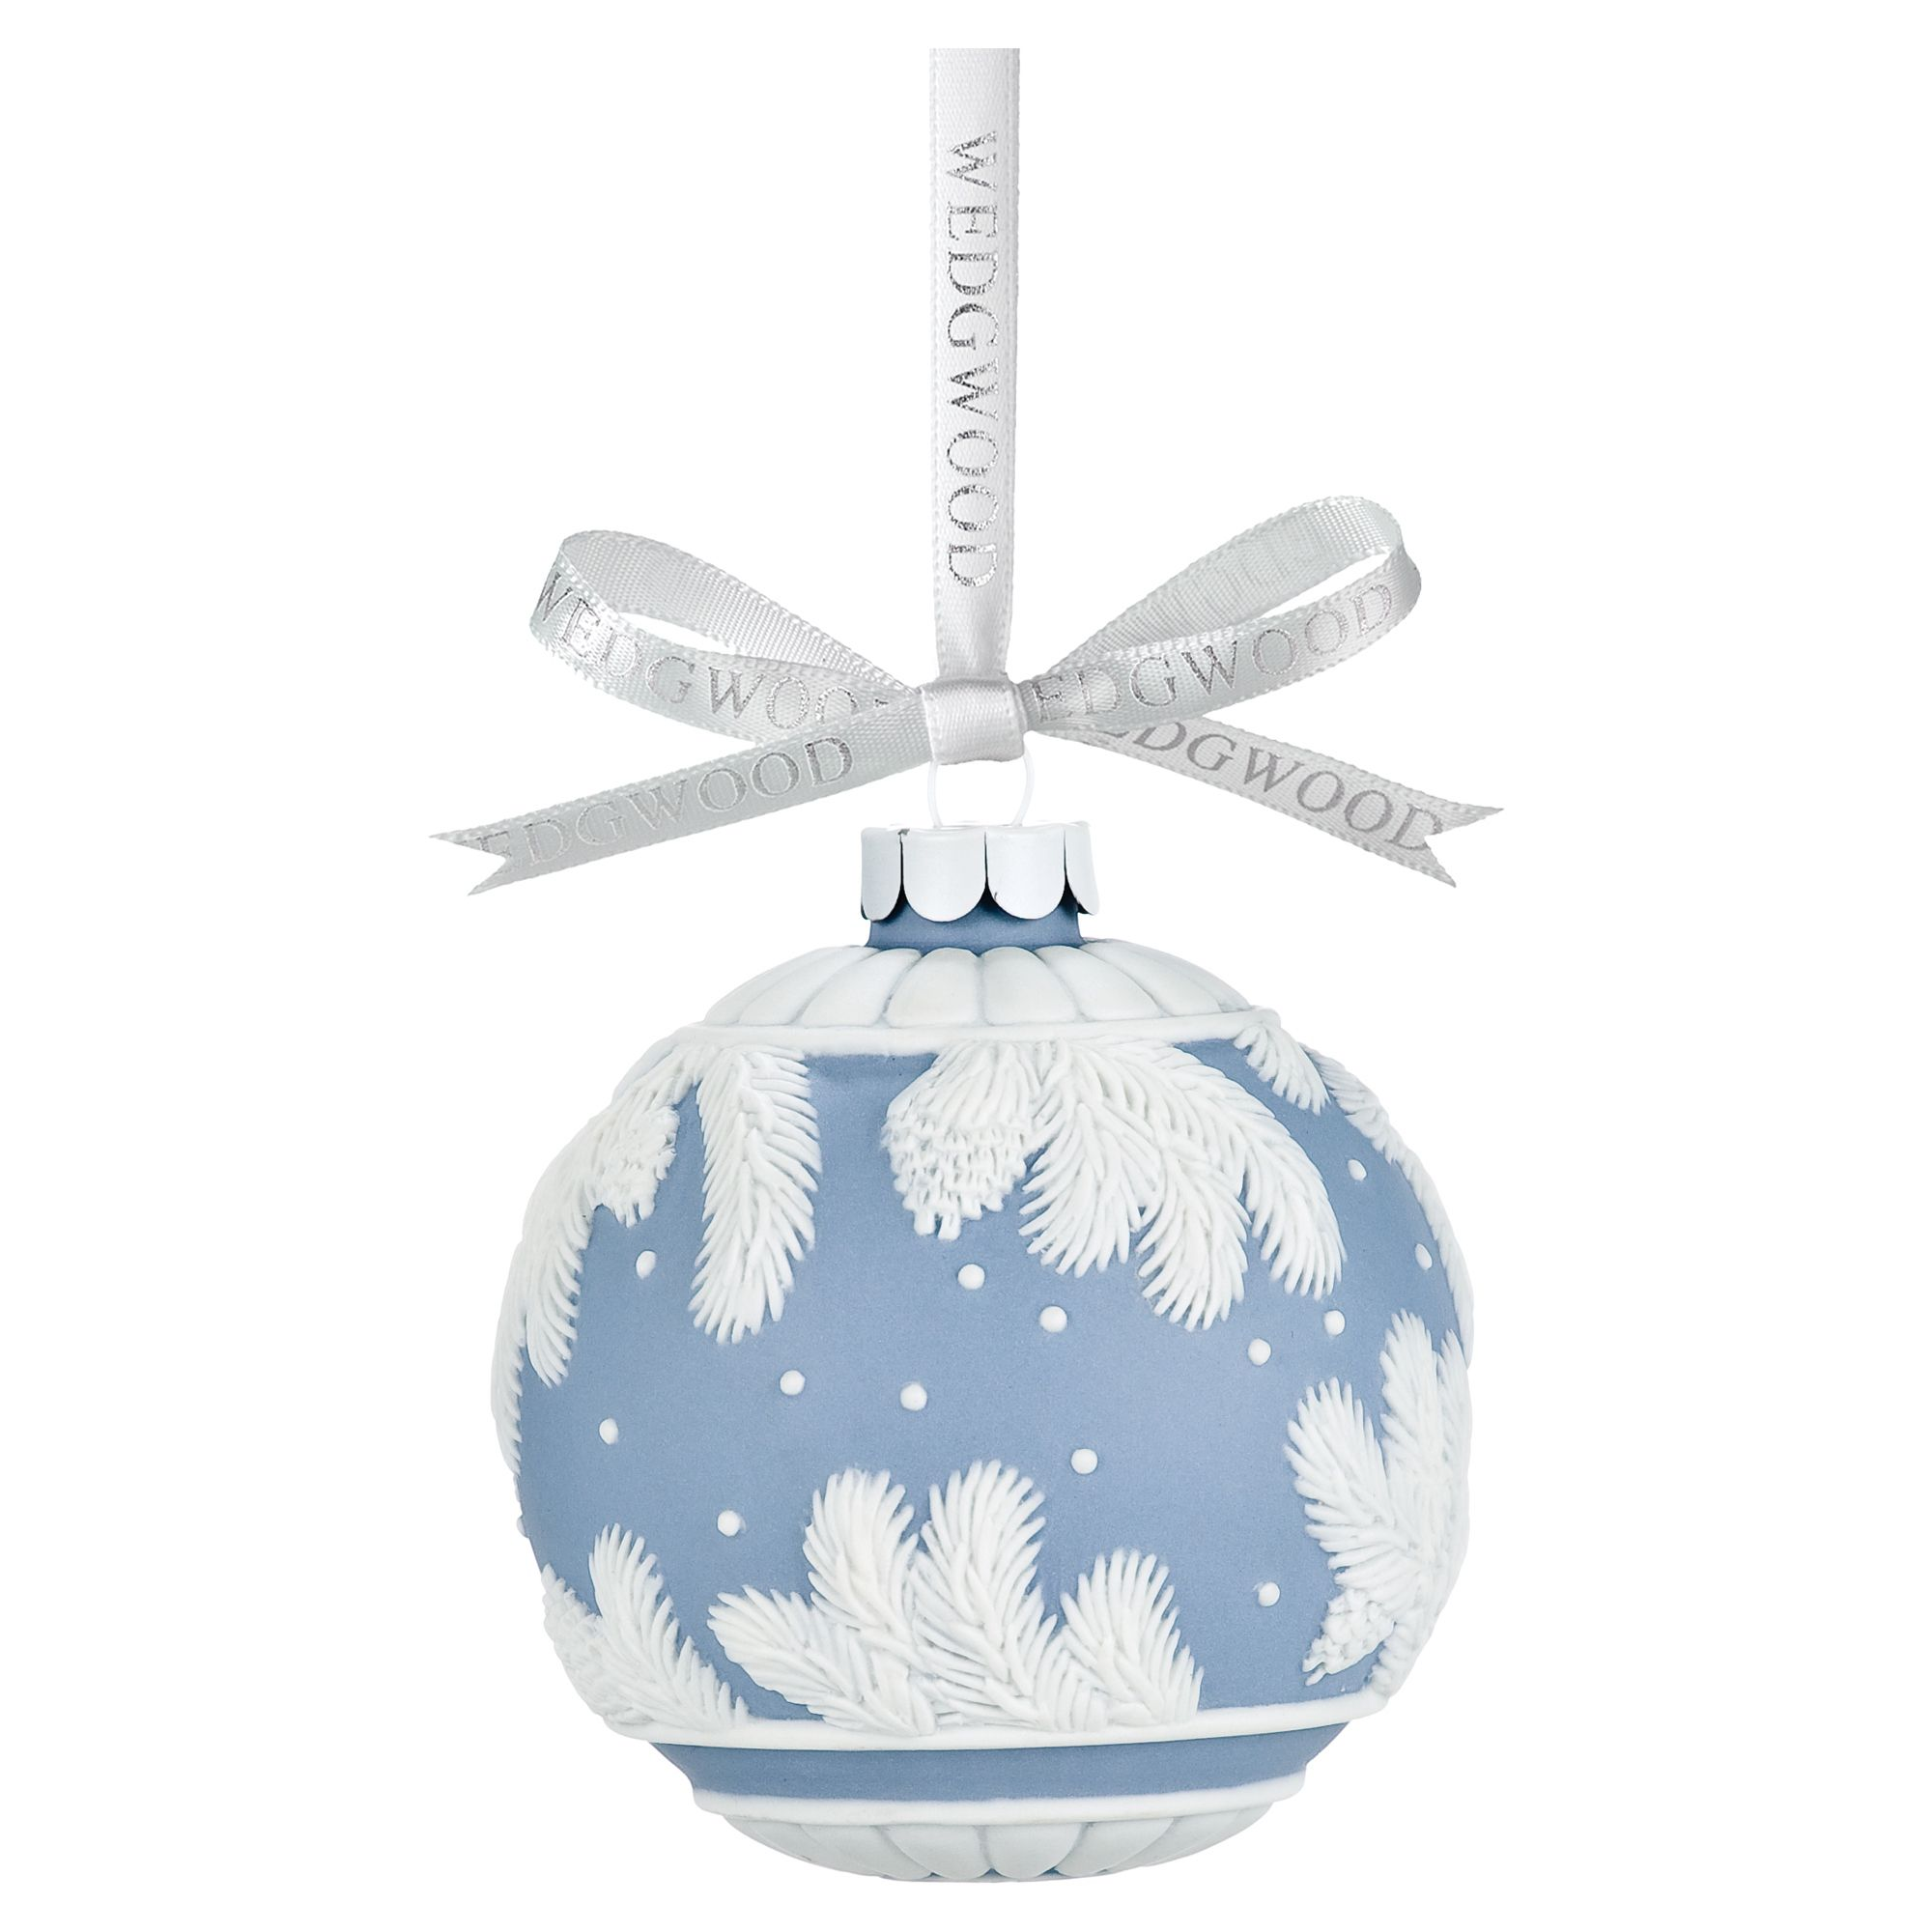 Wedgwood Pine cone ball decoration